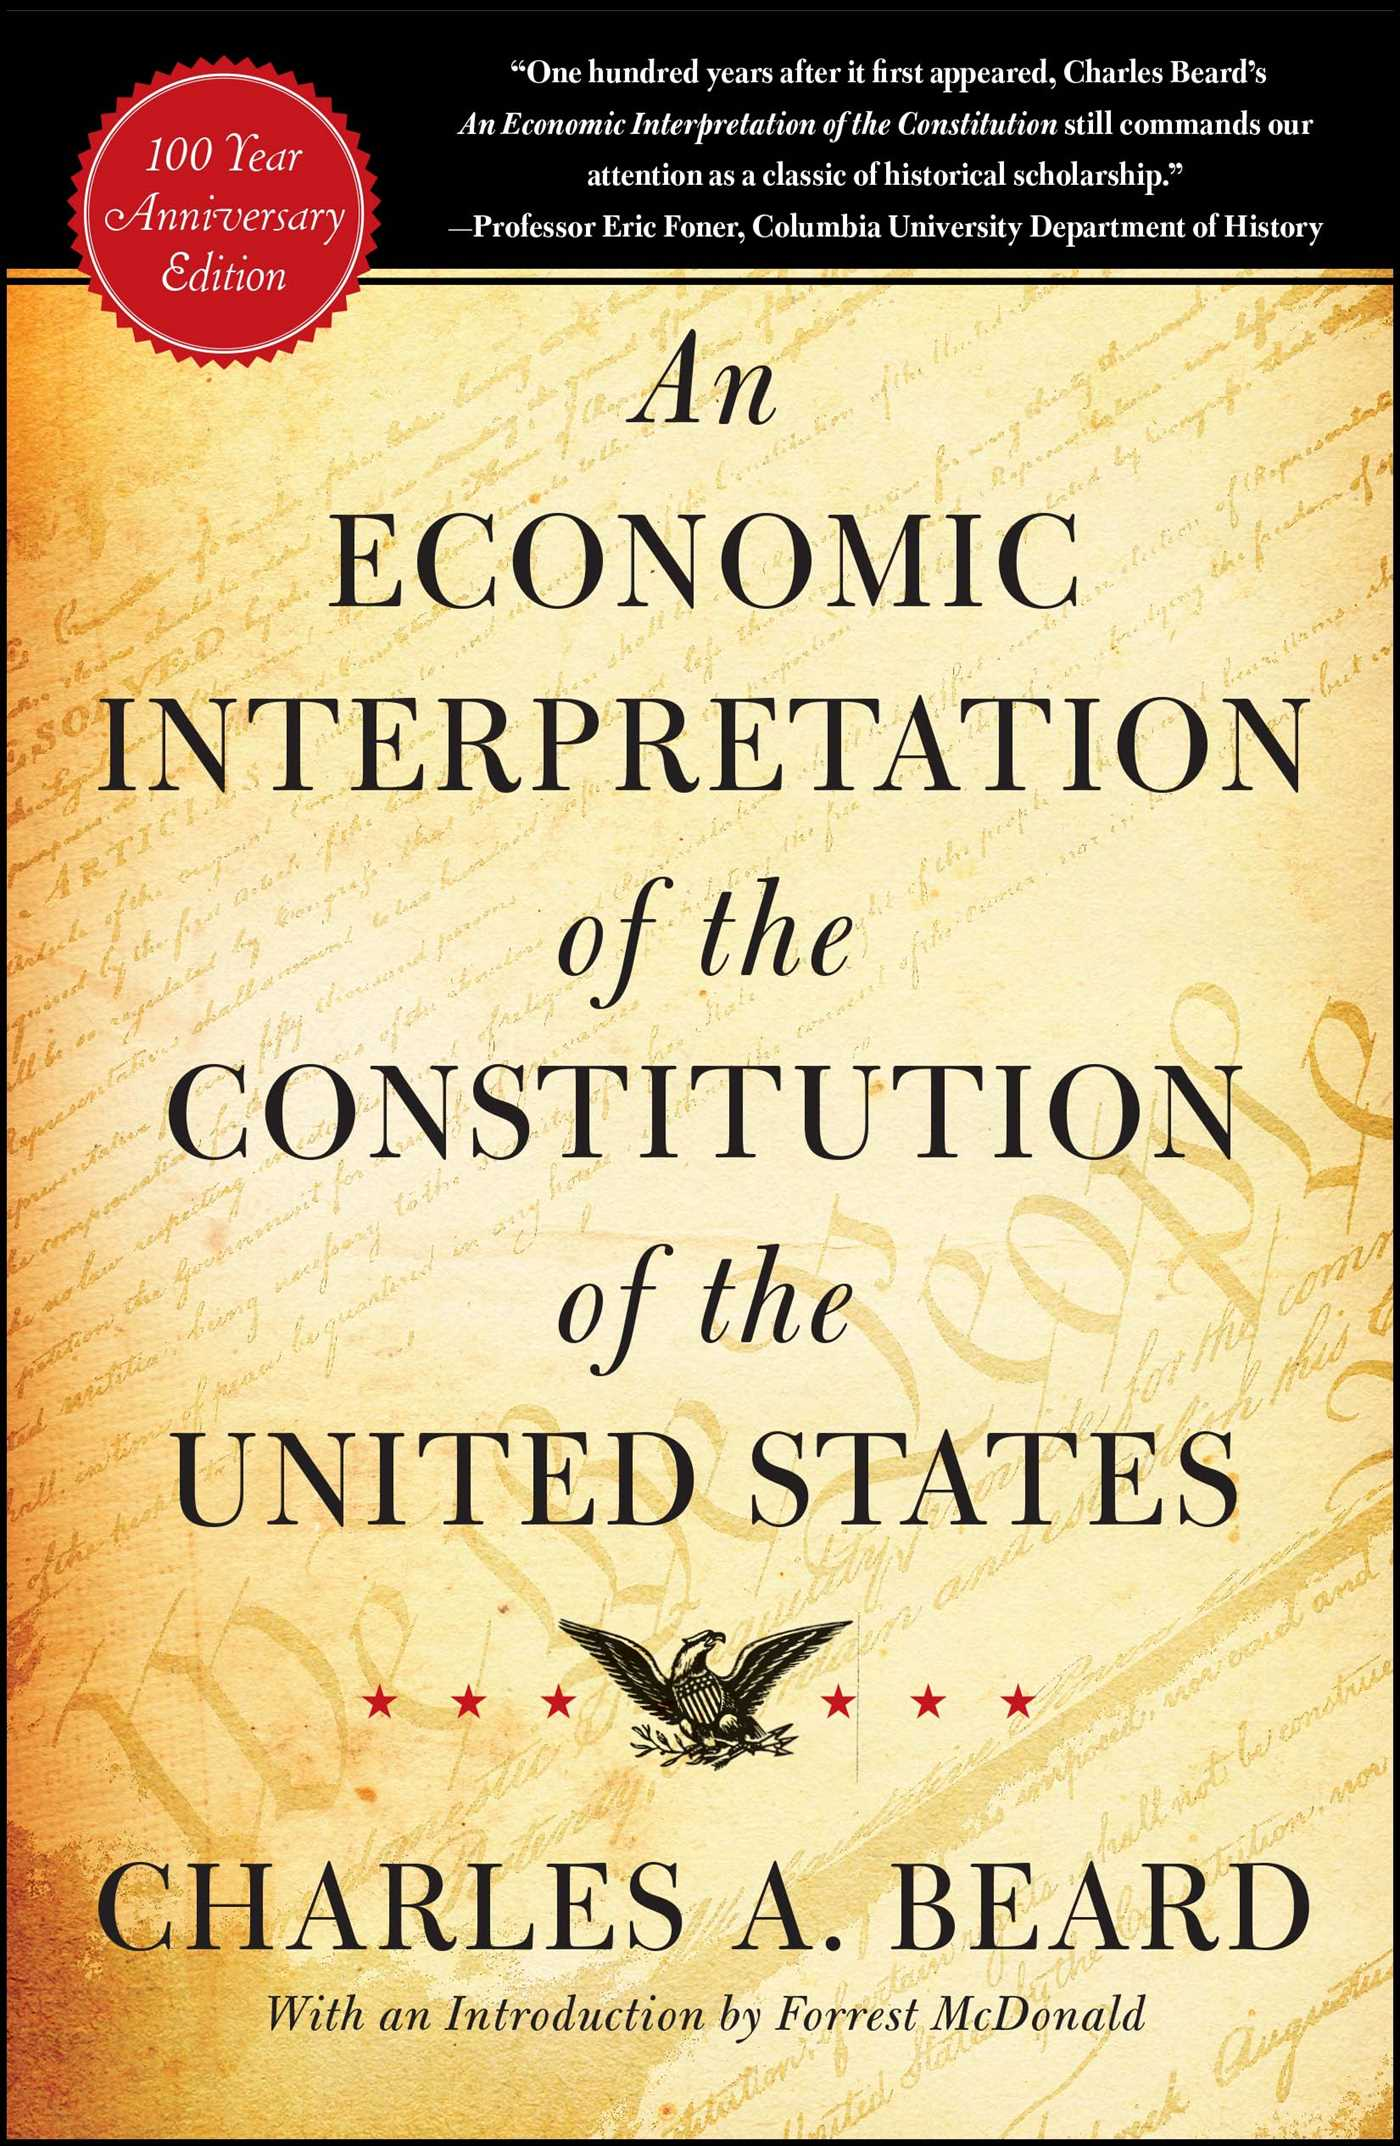 the constitution and literature of the The constitution was a spare document, providing few details about how the us government would run itself it explained the rough organization of the three branches, how they would interact with the states, and how the document could be amended.